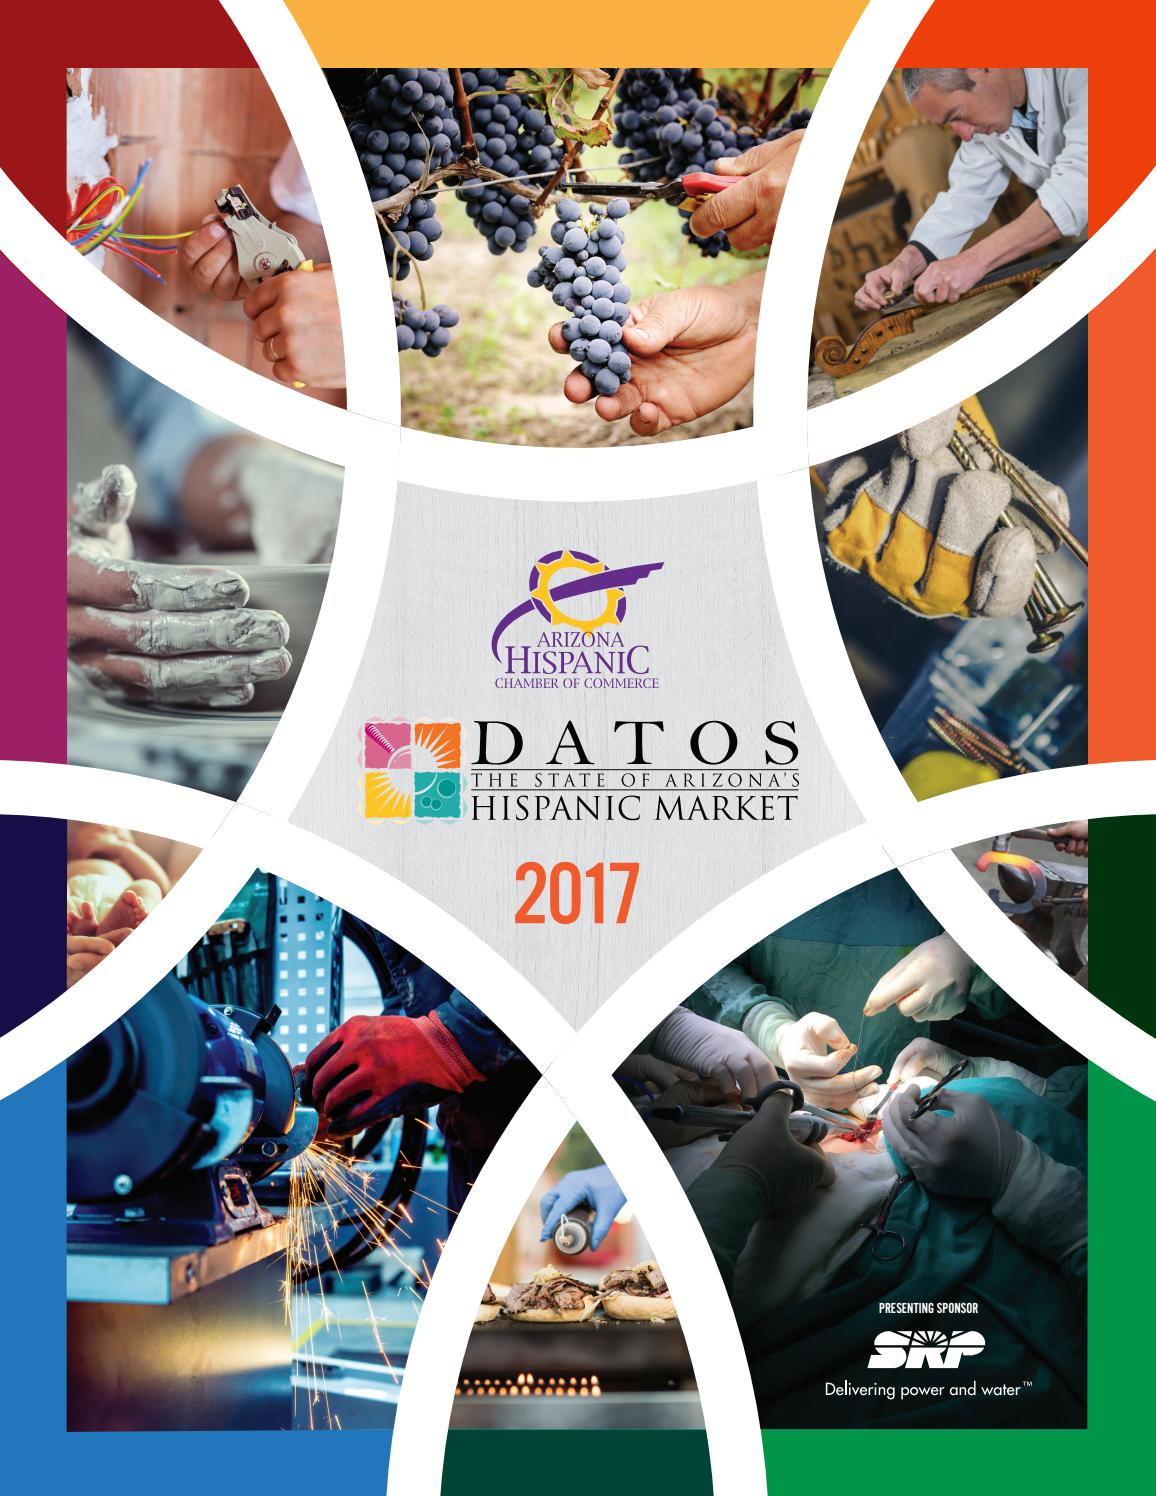 DATOS Book 2017 by ARIZONA HISPANIC CHAMBER OF COMMERCE - issuu